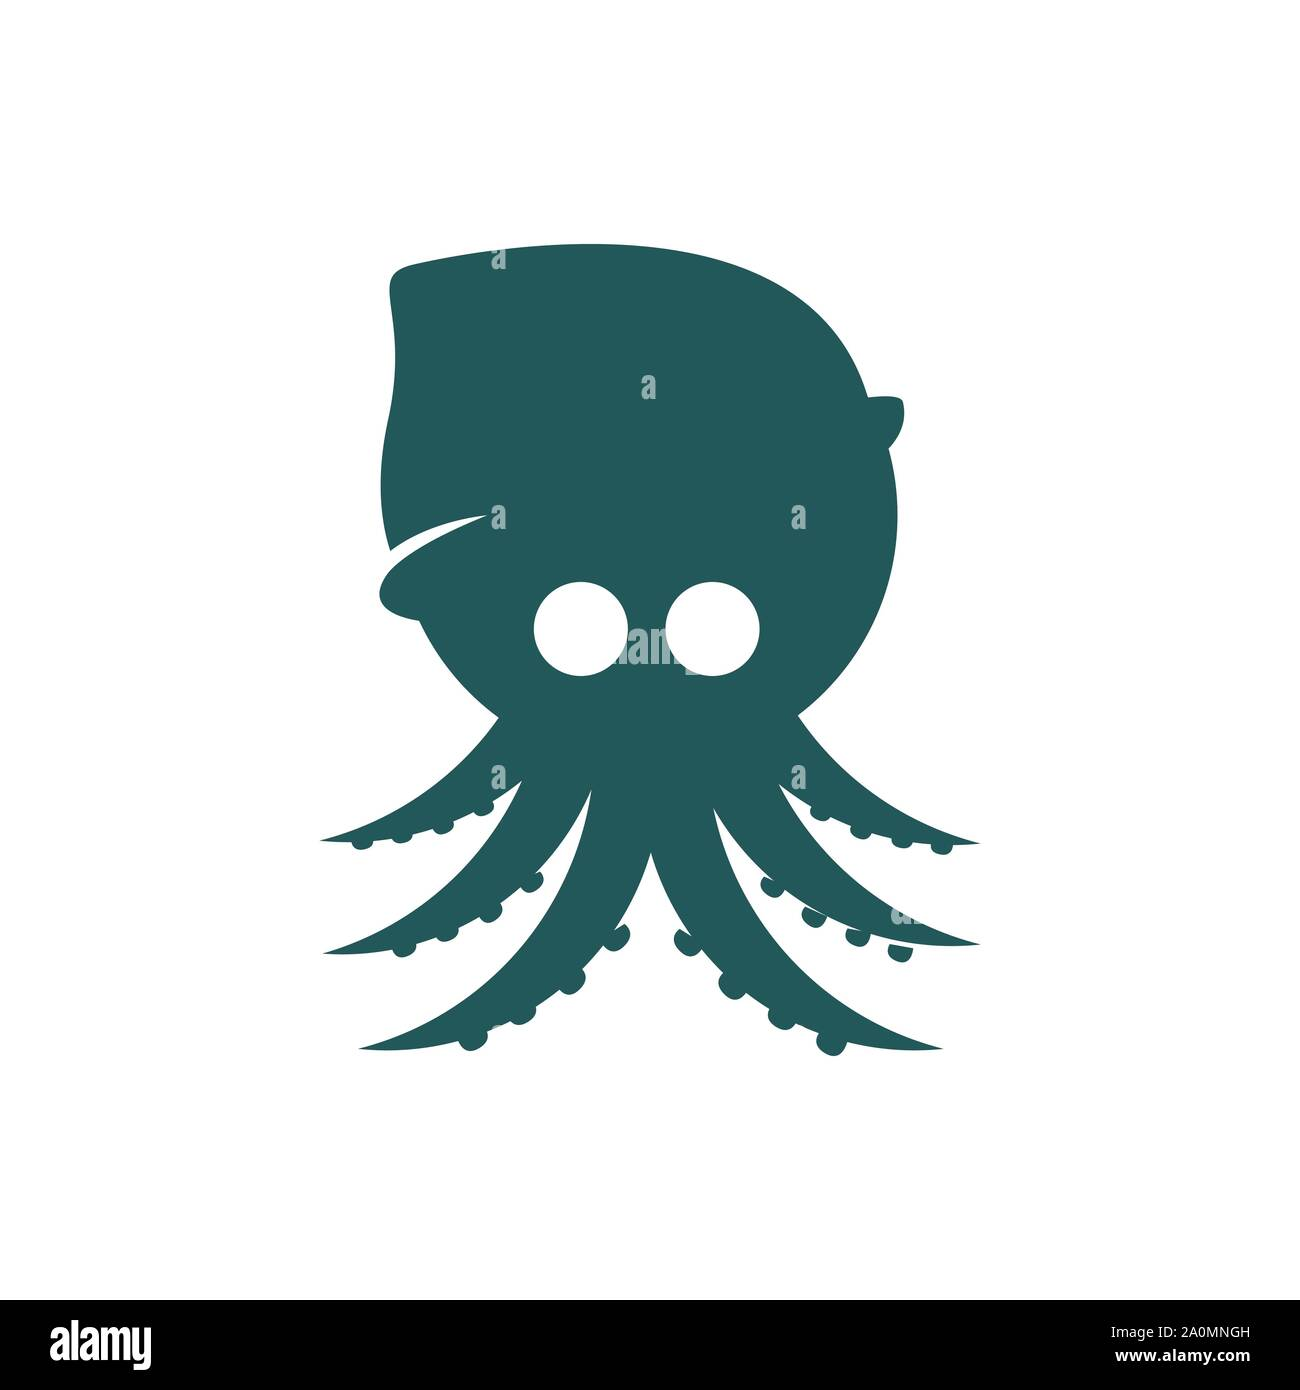 simple modern octopus squid logo design vector illustrations stock vector image art alamy https www alamy com simple modern octopus squid logo design vector illustrations image327452961 html